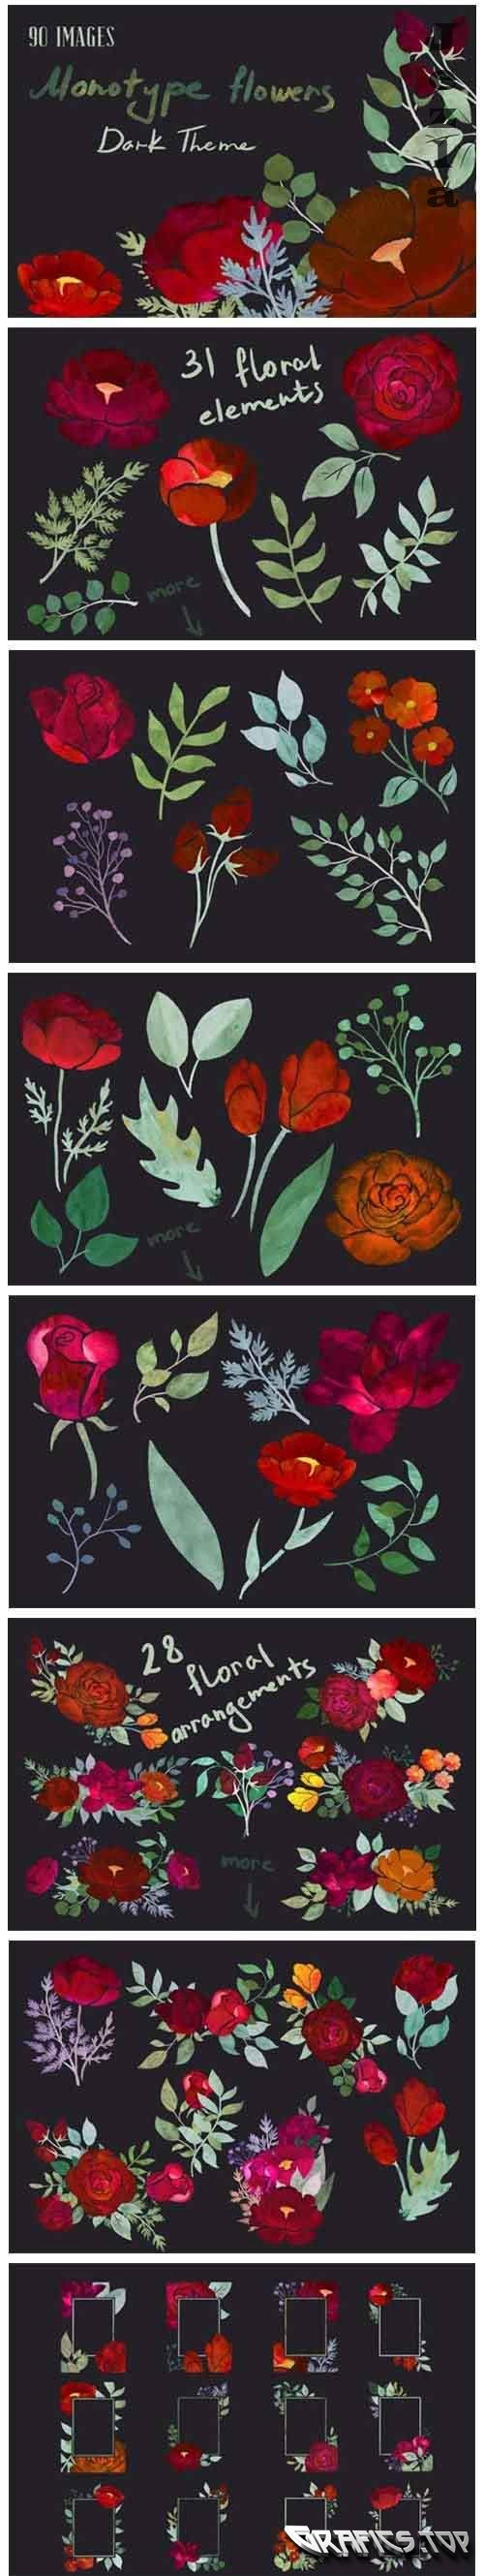 Dark Theme Monotype Flowers - 5024093